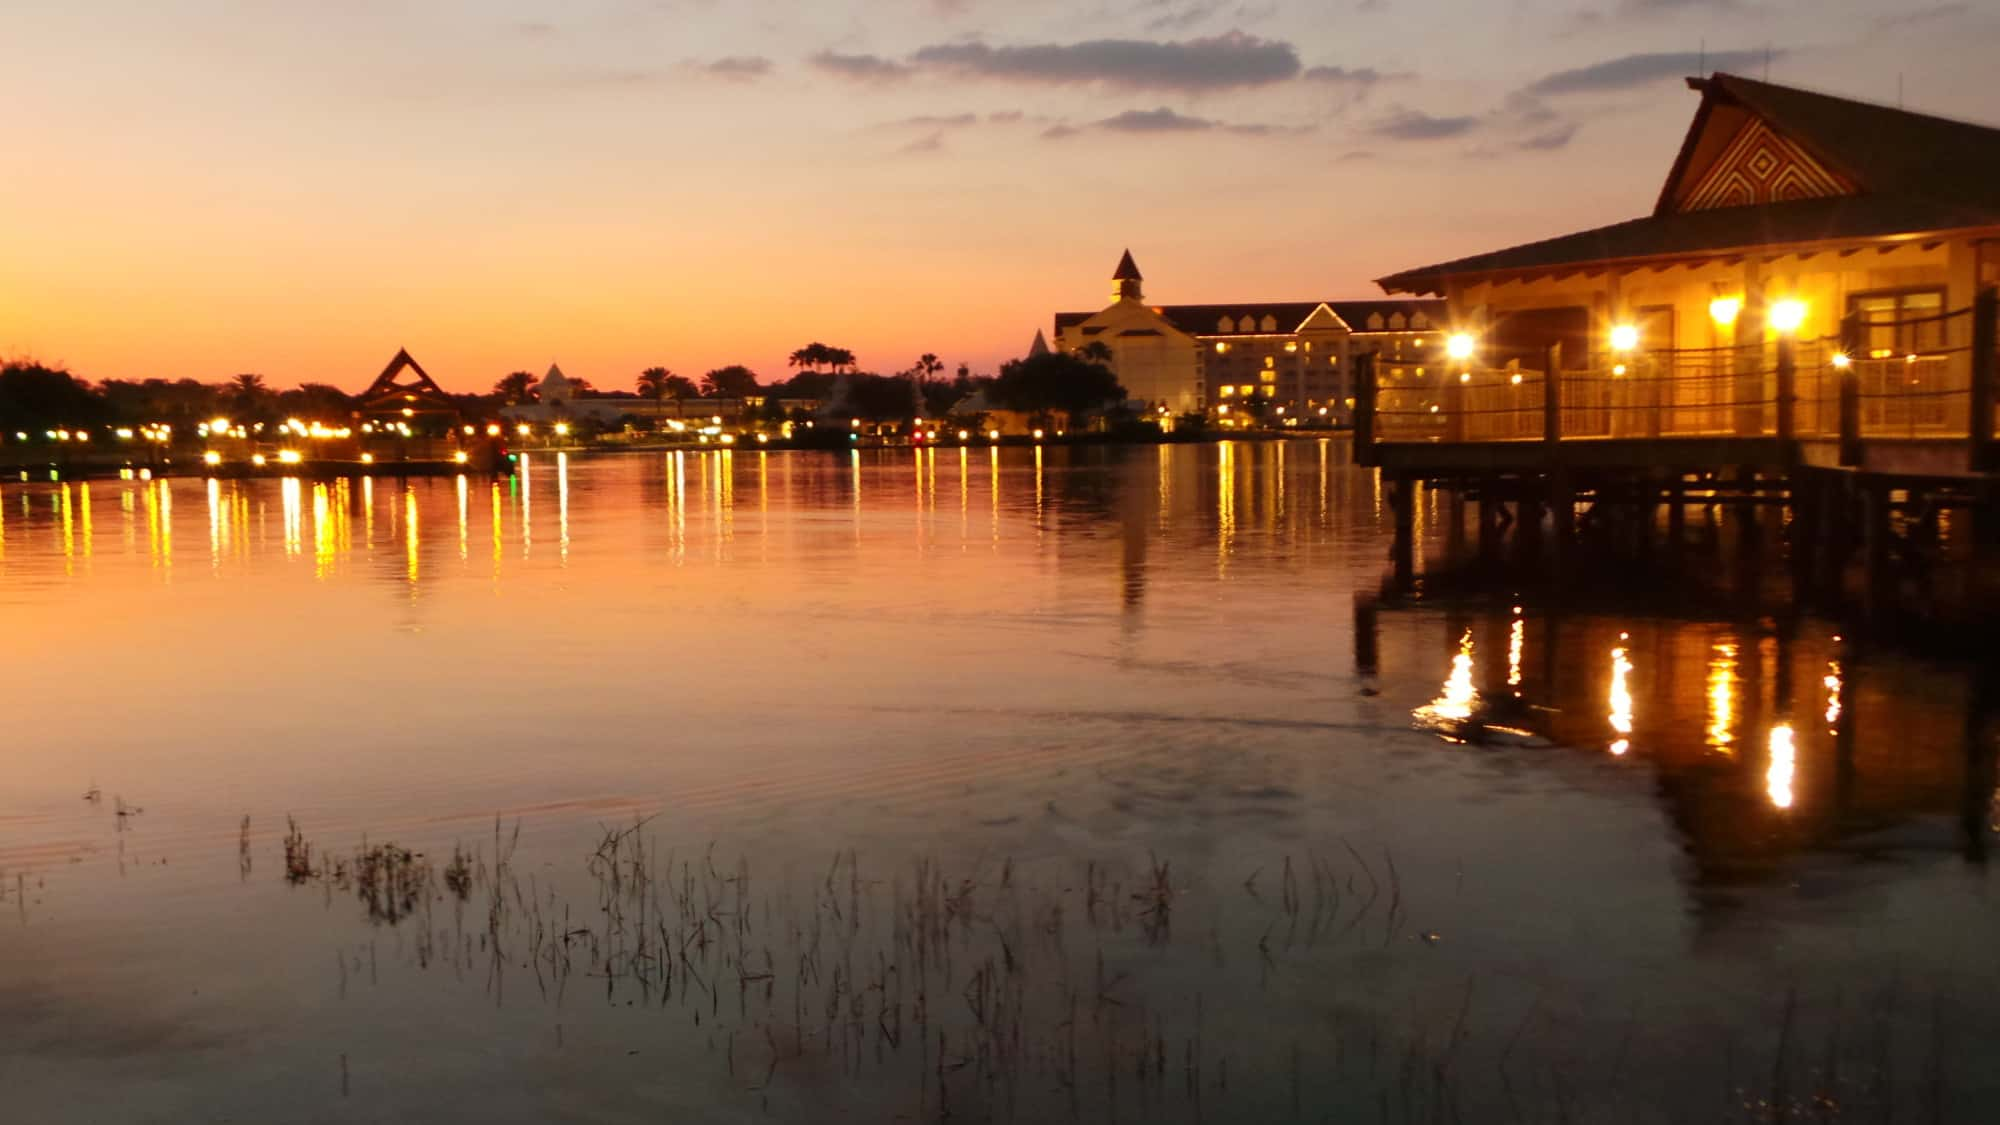 Disney's Polynesian Village Resort beach